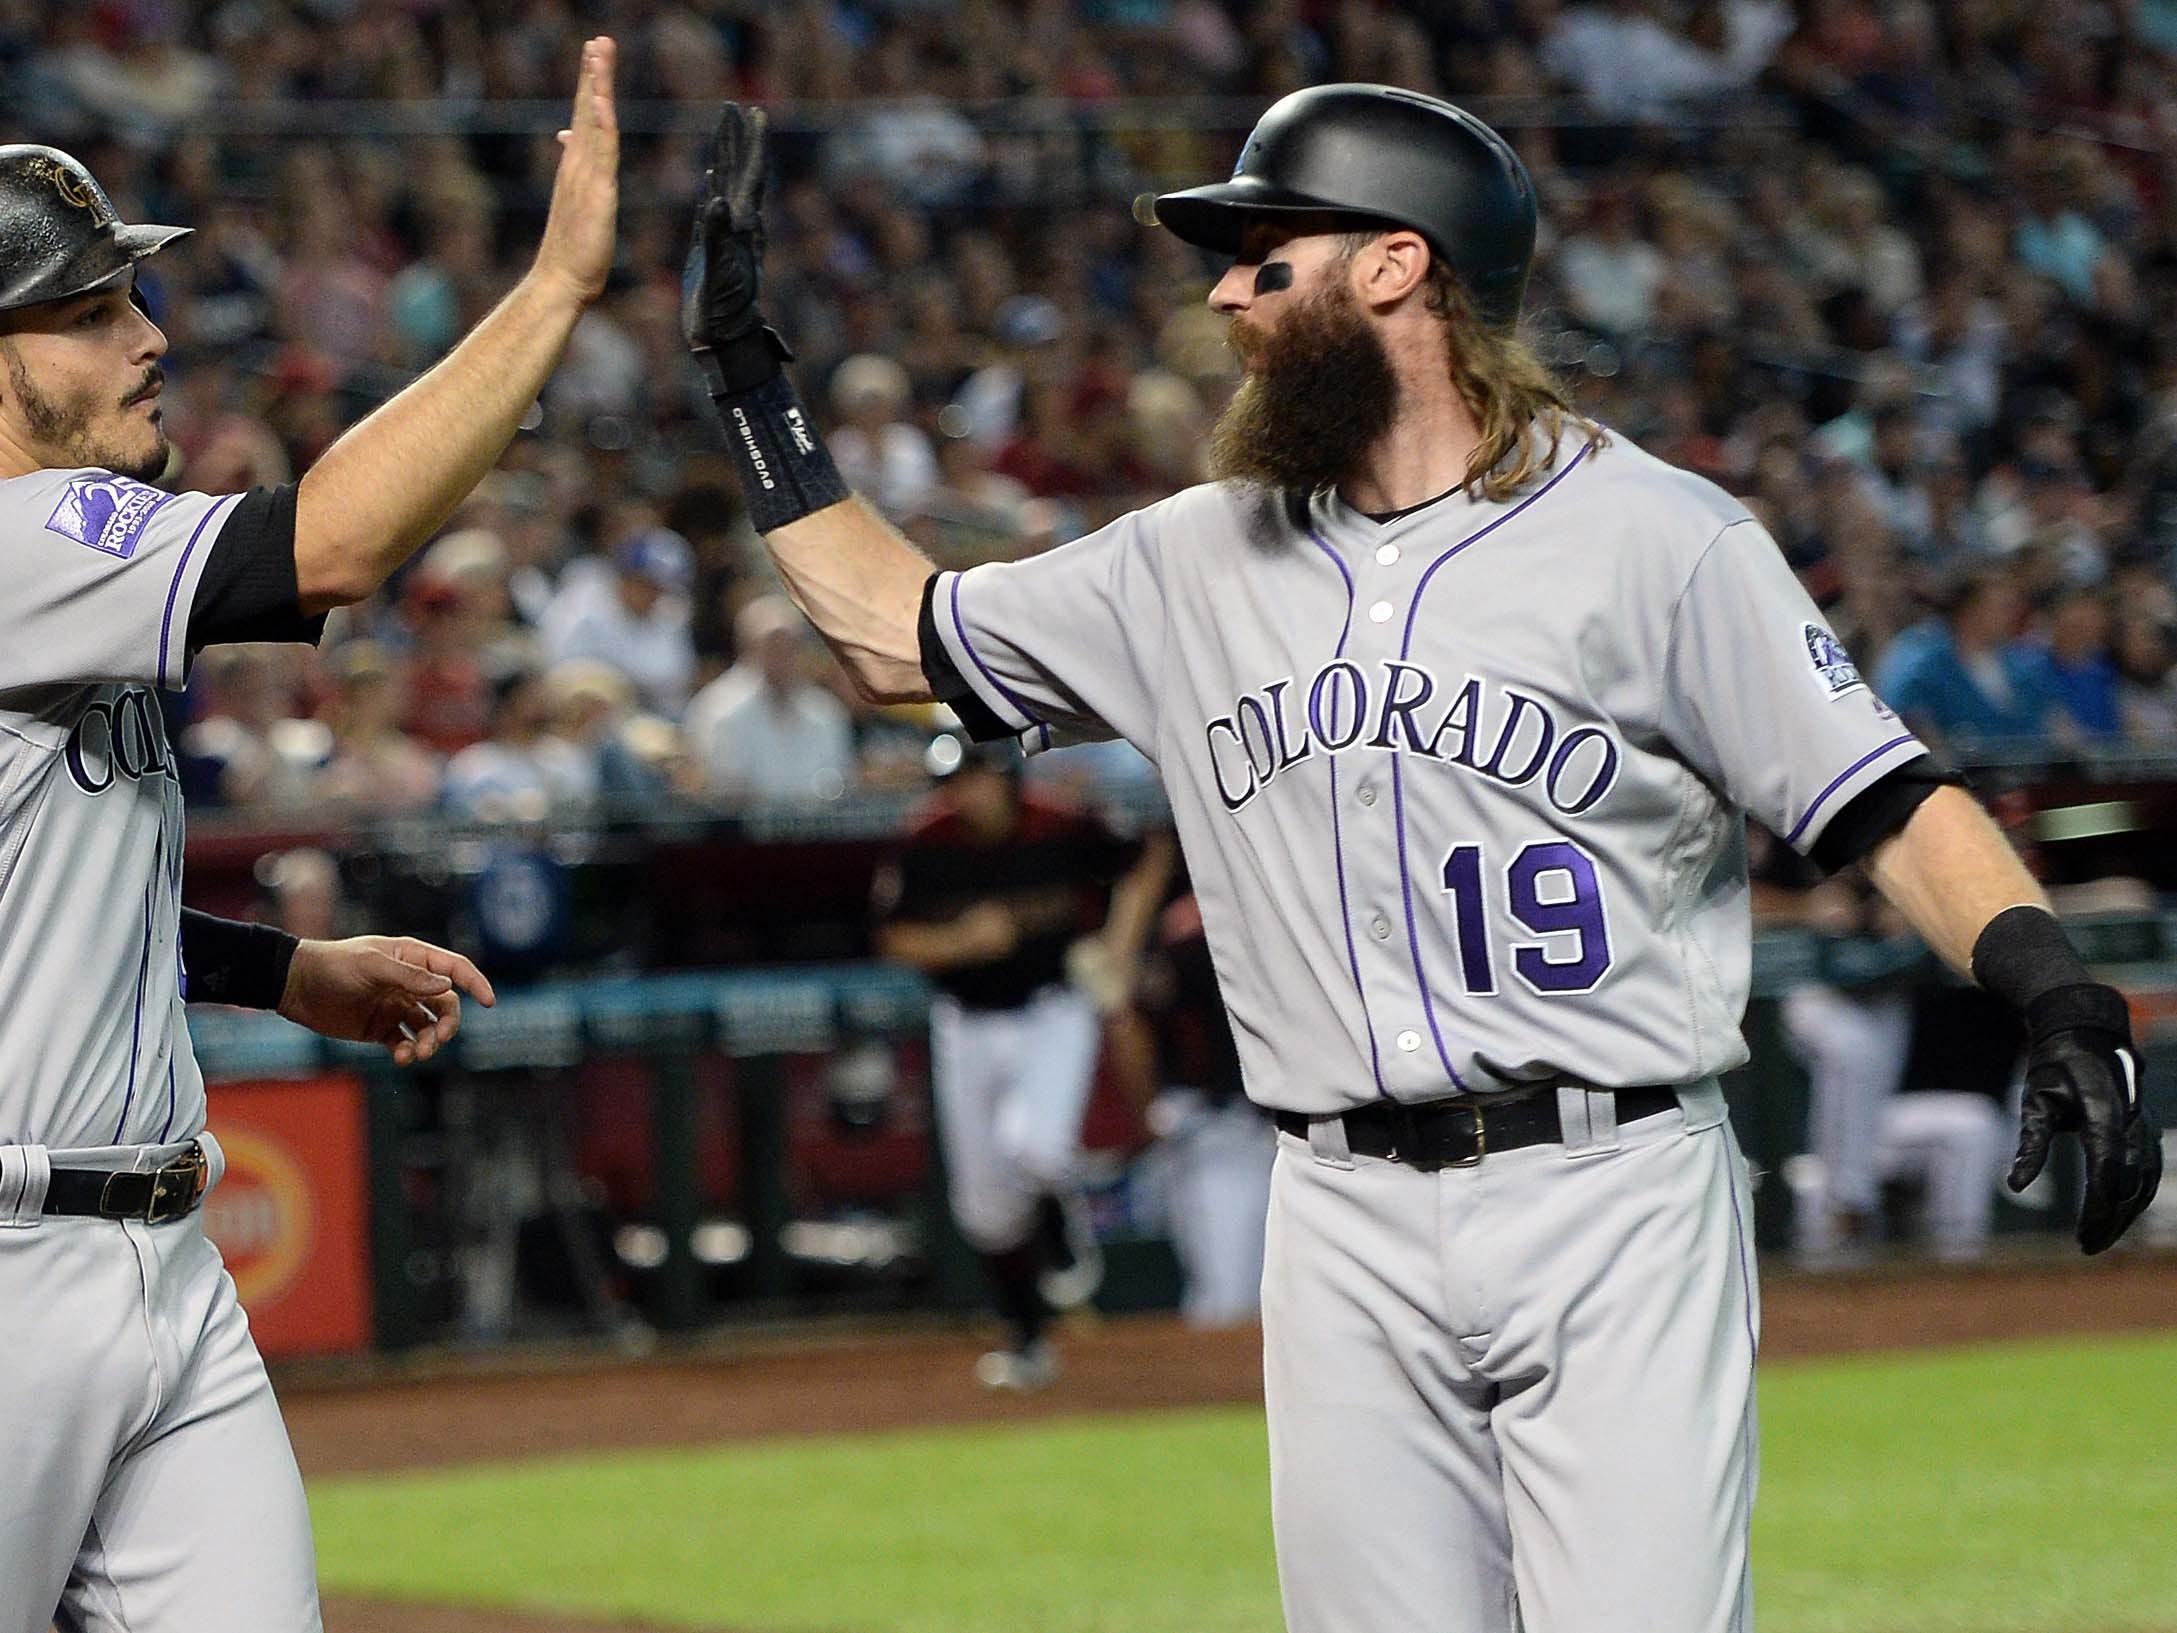 Sep 22, 2018; Phoenix, AZ, USA; Colorado Rockies third baseman Nolan Arenado (28) and Colorado Rockies center fielder Charlie Blackmon (19) high five after scoring runs against the Arizona Diamondbacks during the third inning at Chase Field.